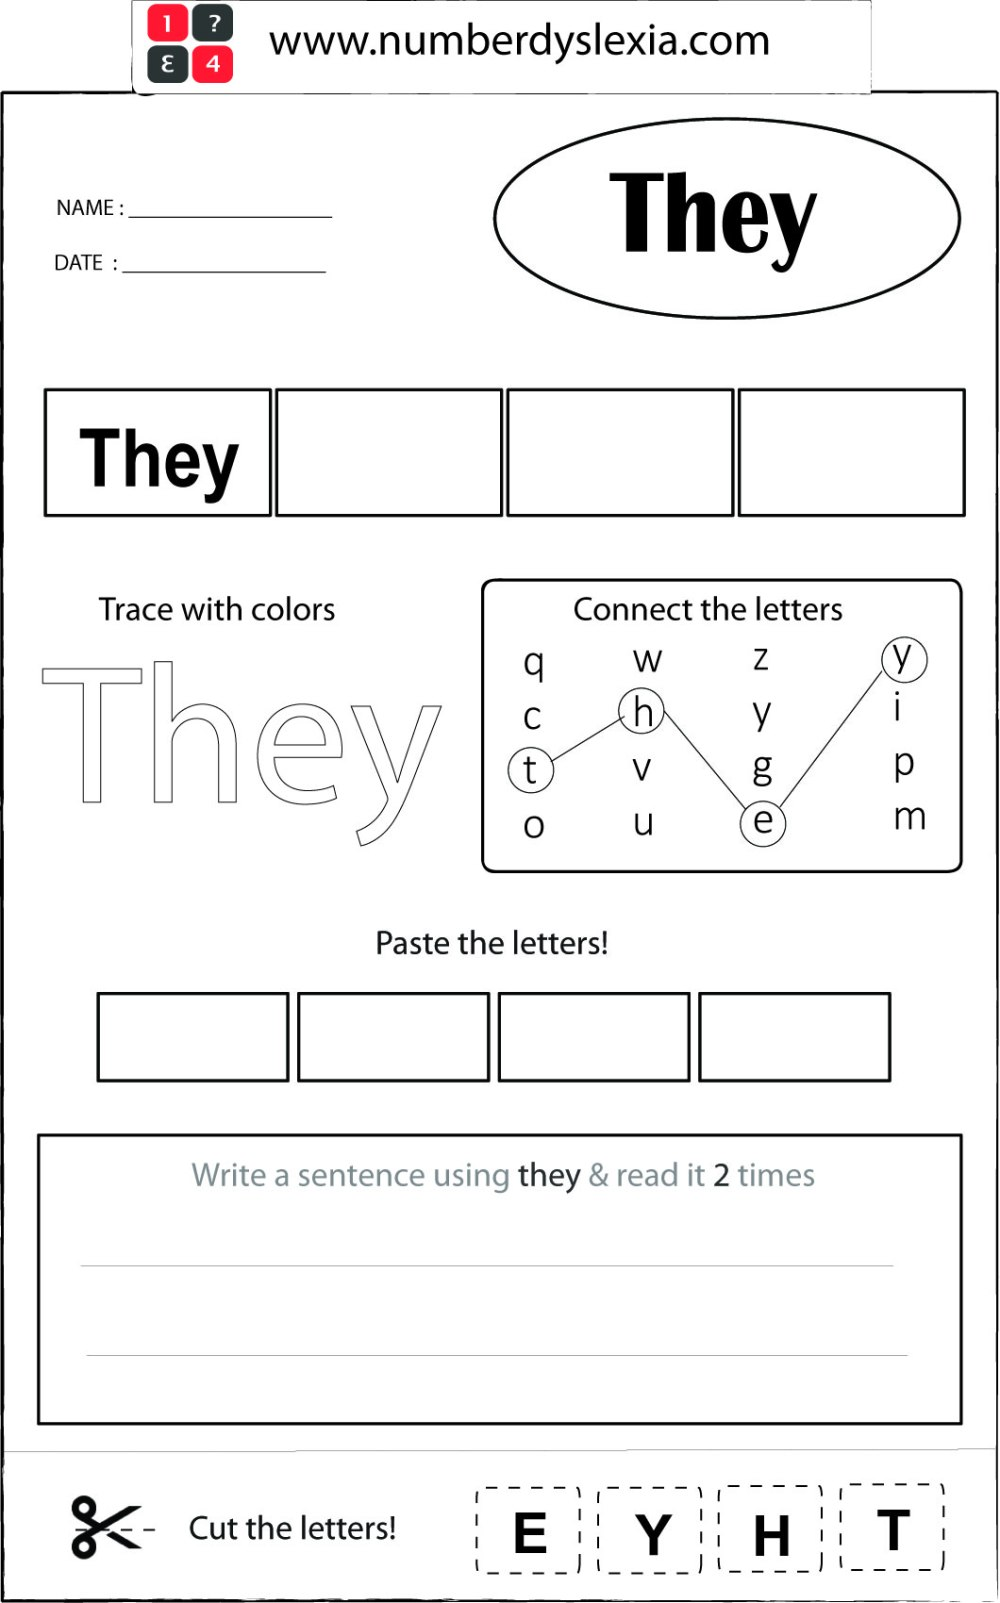 medium resolution of Free Printable Orton Gillingham Worksheet with Template PDF - Number  Dyslexia